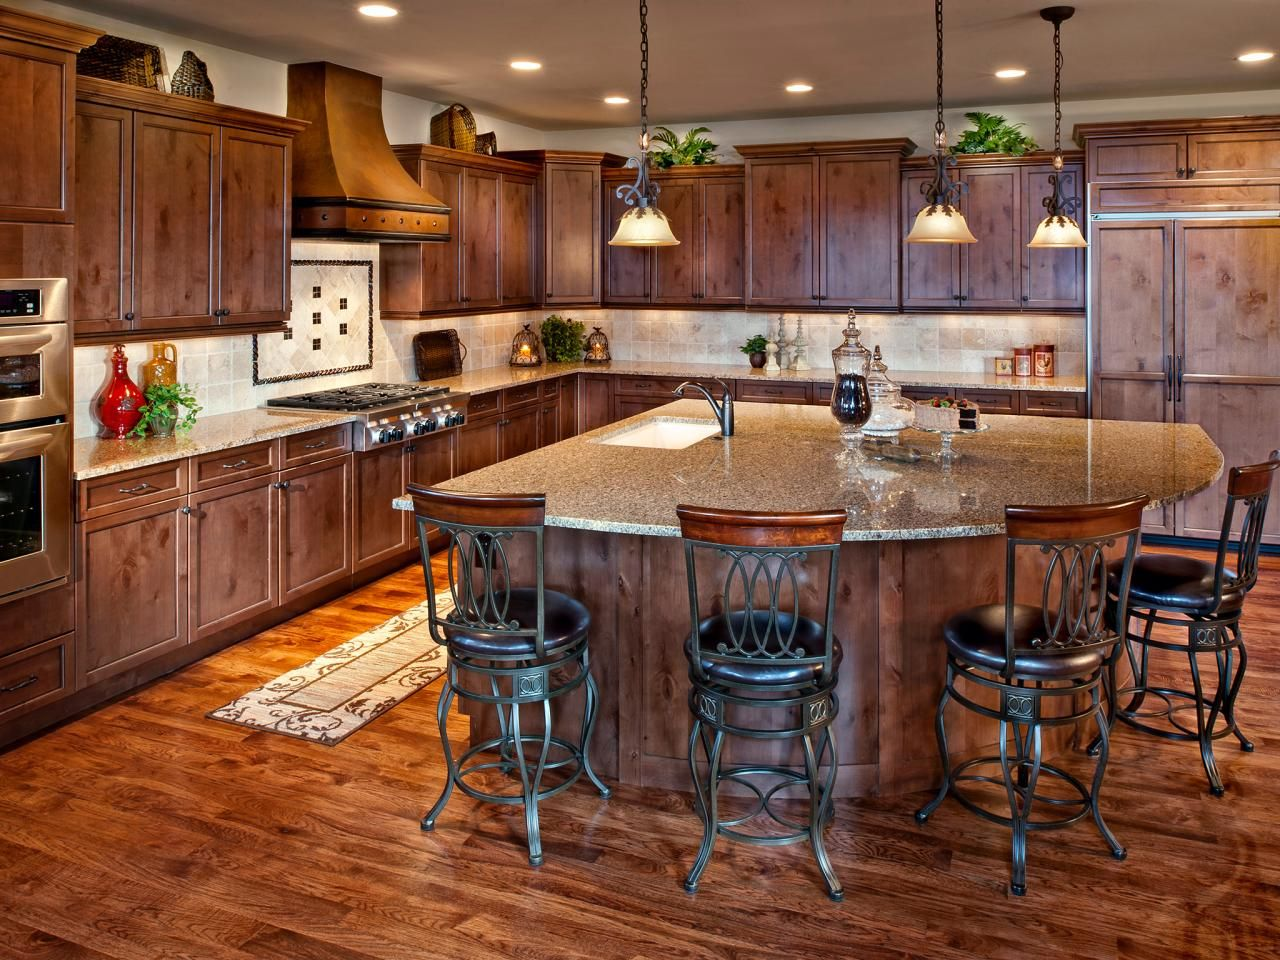 Beautiful Pictures of Kitchen Islands: HGTV's Favorite Design Ideas